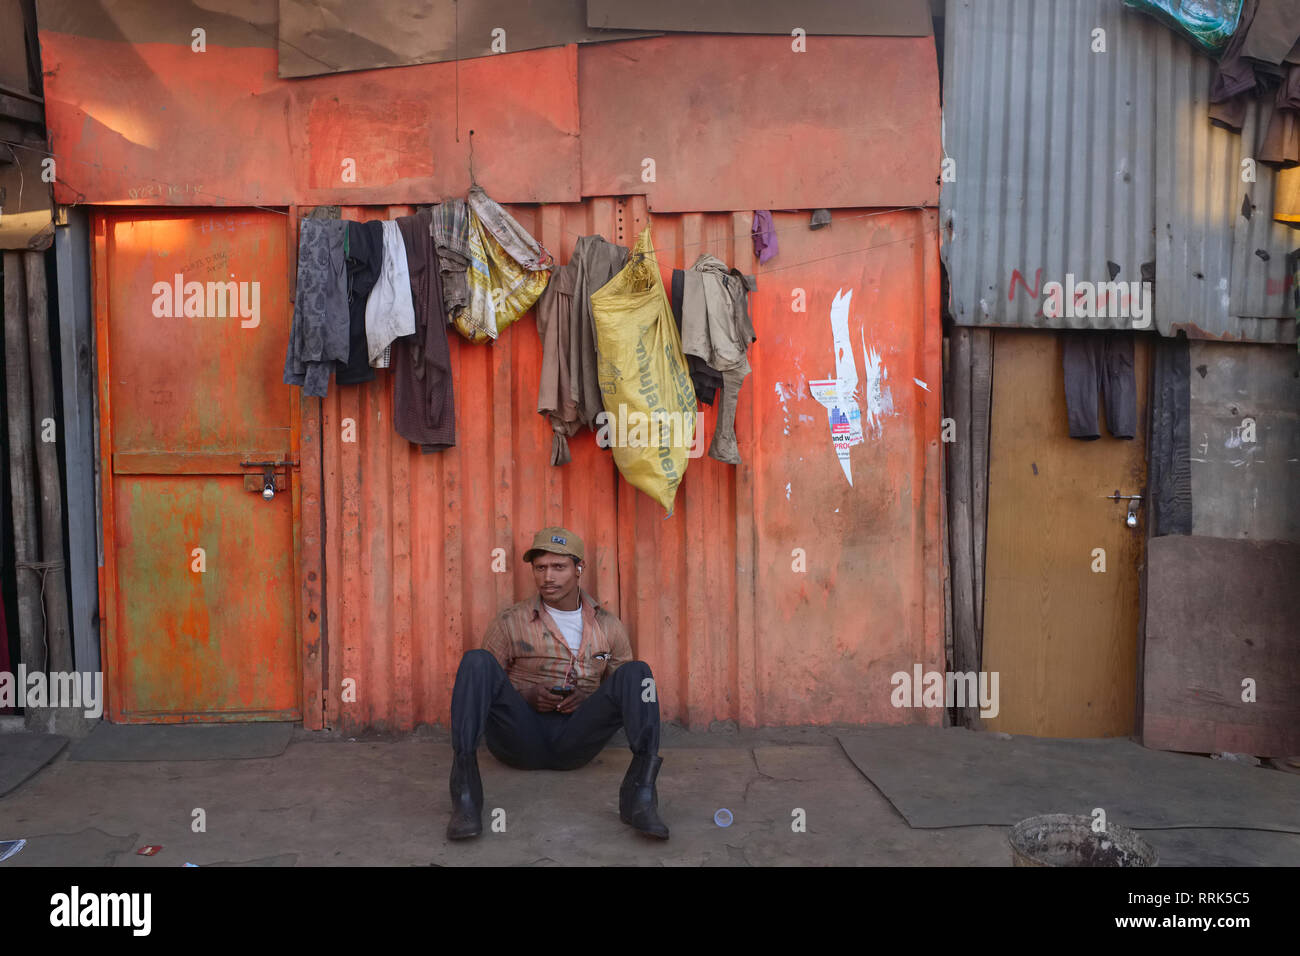 An exhausted worker in a dockyard in Mazgaon area, in Mumbai, India, relaxes in front of his living quarters, a rudimentary, if colorful,  tin shack - Stock Image